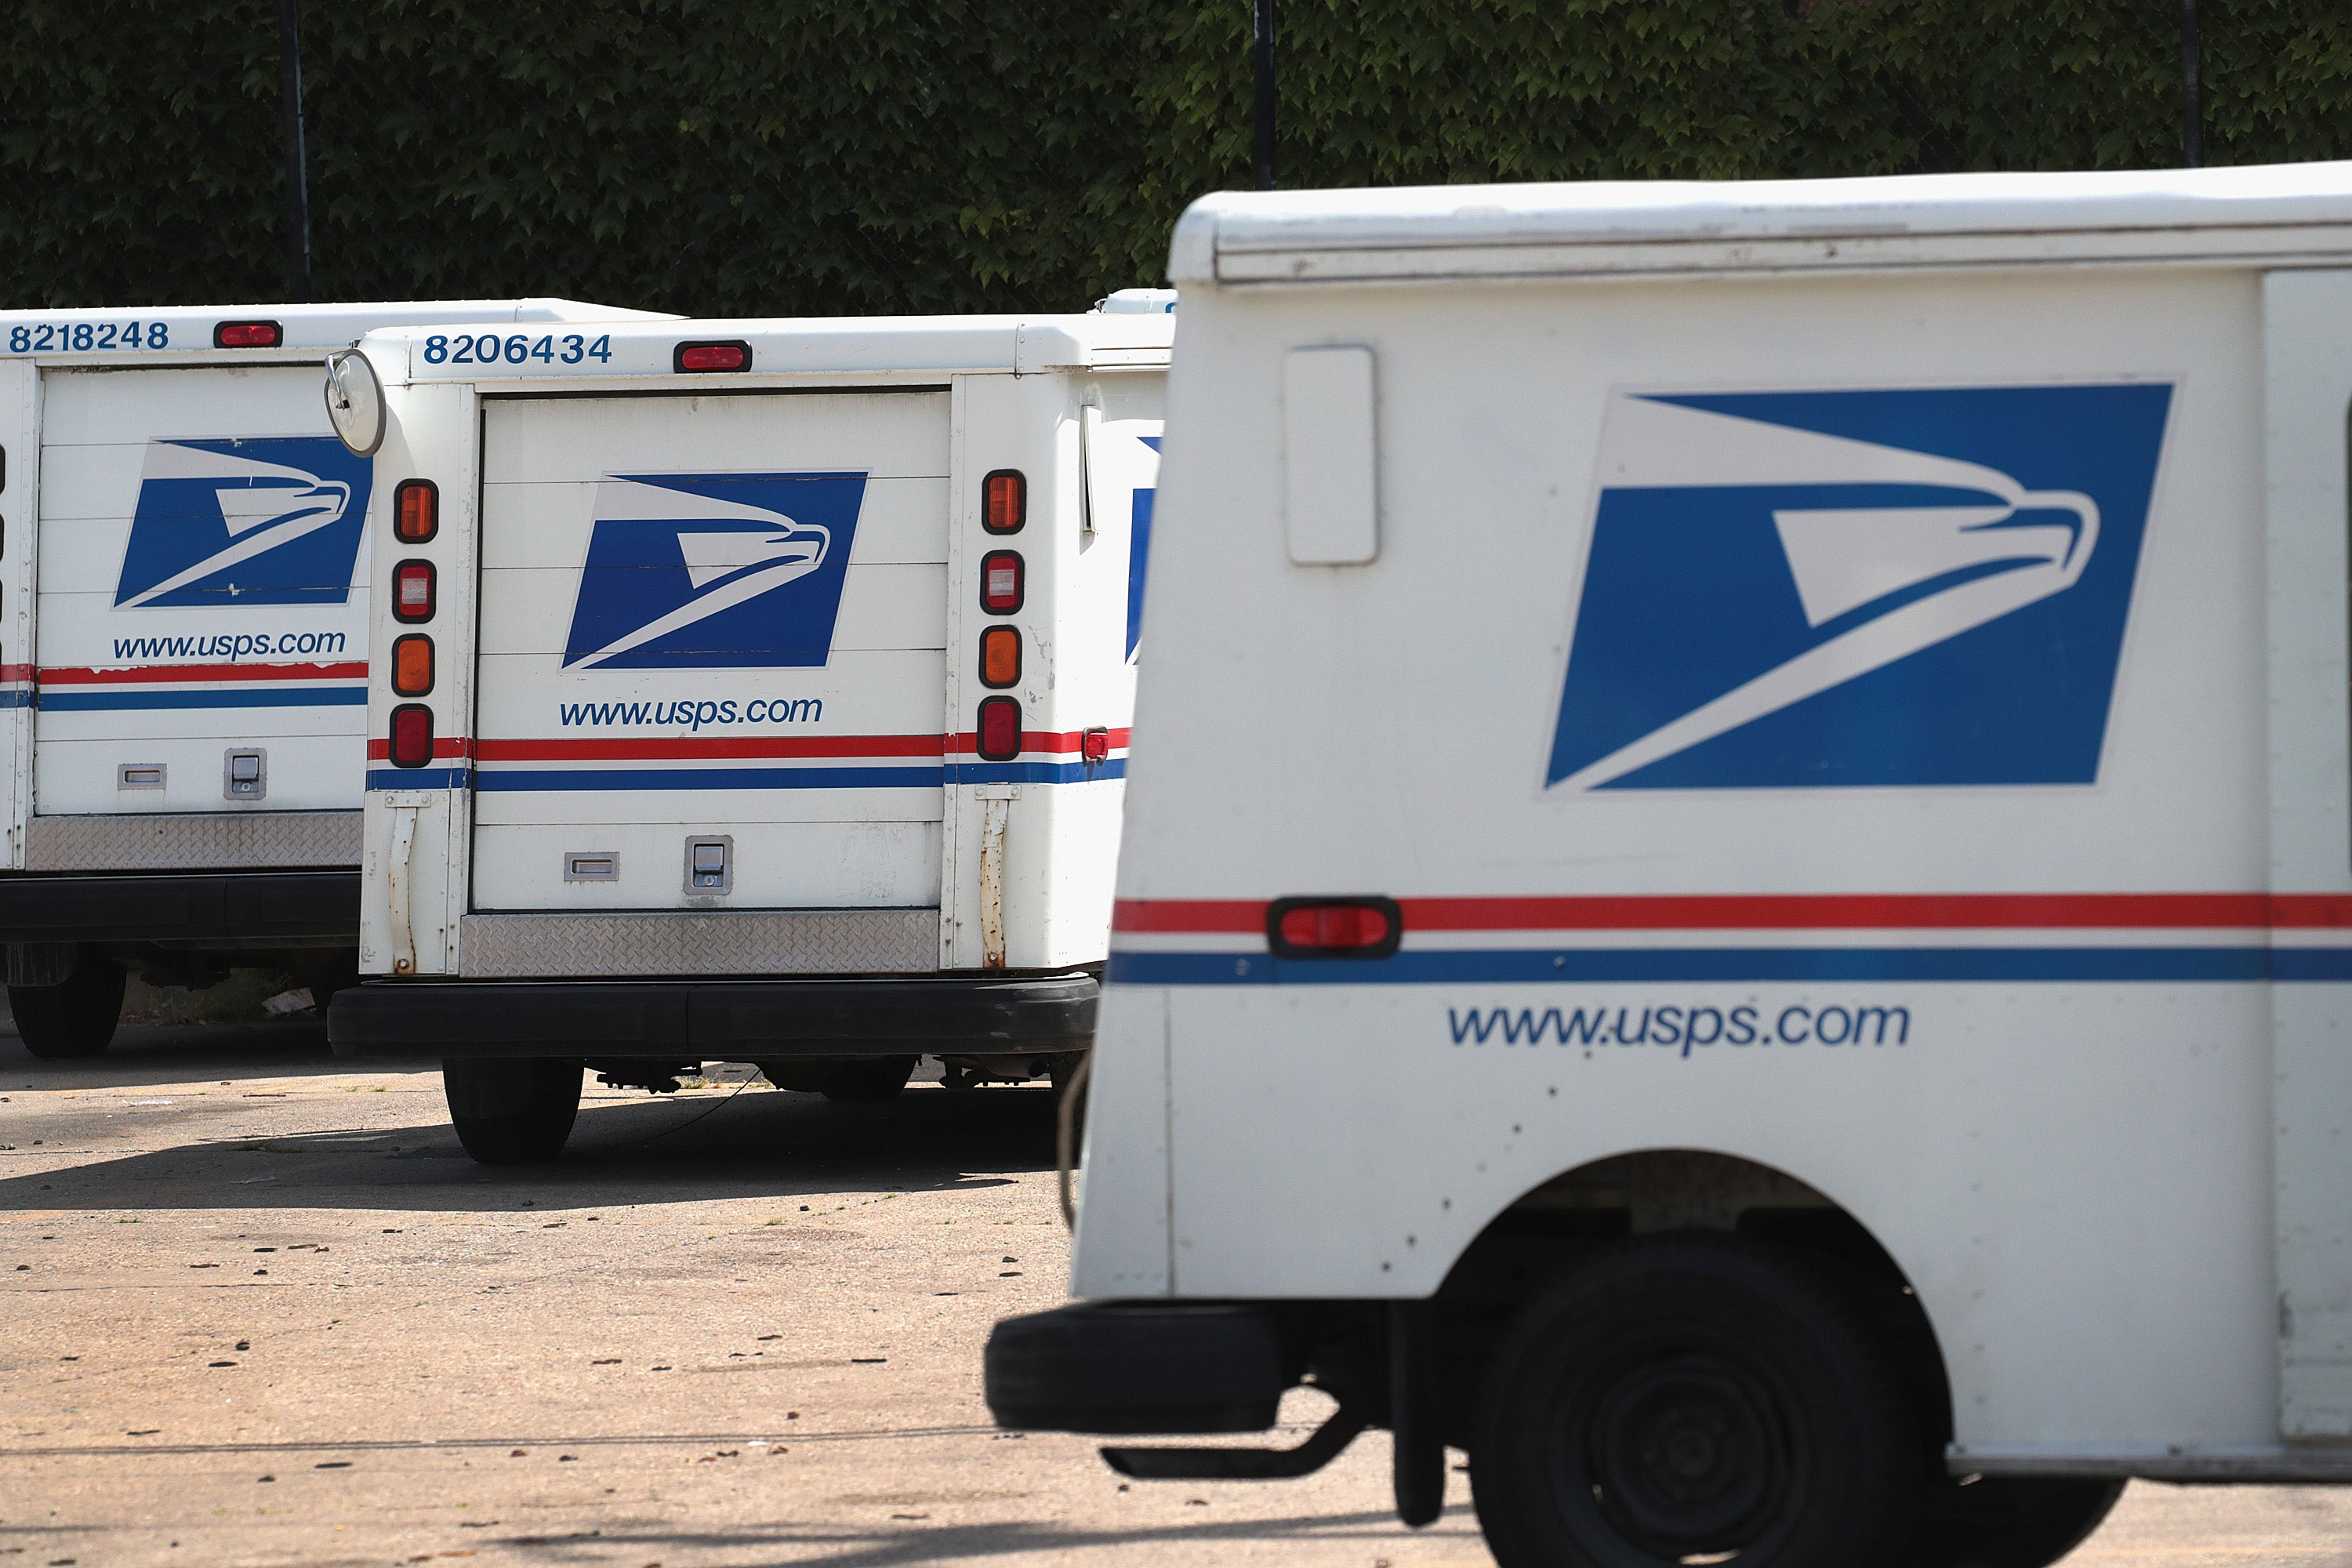 Postal Service says it has 'ample capacity' to handle election after Trump casts doubt